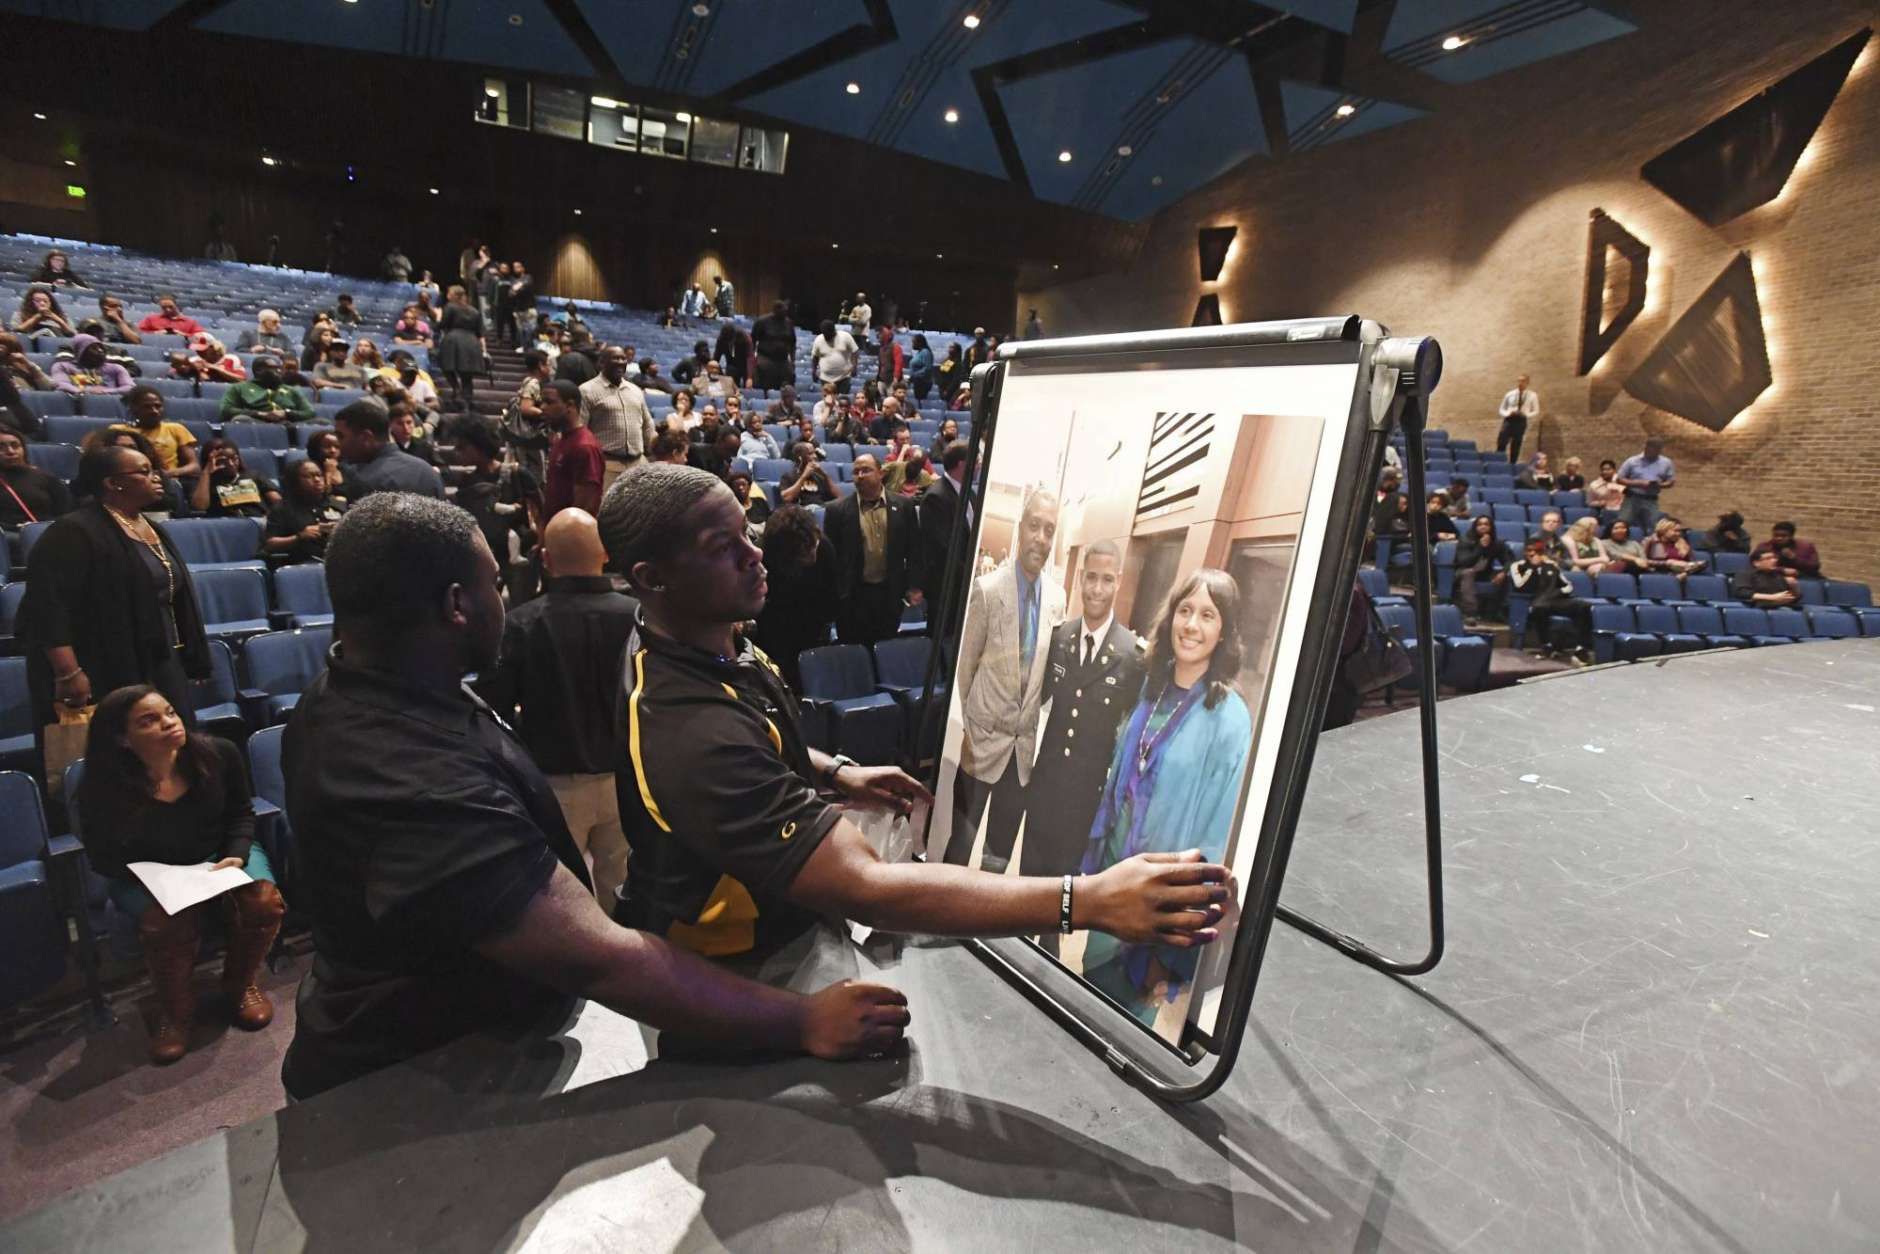 Marquise Wade, from left, sophomore class president, and Darrin Branch, coordinator of Greek Life on campus, set up a picture of Richard Collins III for a memorial vigil for Collins, who was killed Saturday at the University of Maryland in College Park, as they gather at Bowie State's auditorium in Bowie, Md., Monday, May 22, 2017. Authorities appealed for patience Monday from two college communities reacting in shock, fear and anger after a white University of Maryland student was arrested in what police called the unprovoked stabbing of a black Bowie State University student. (Kenneth K. Lam/The Baltimore Sun via AP)